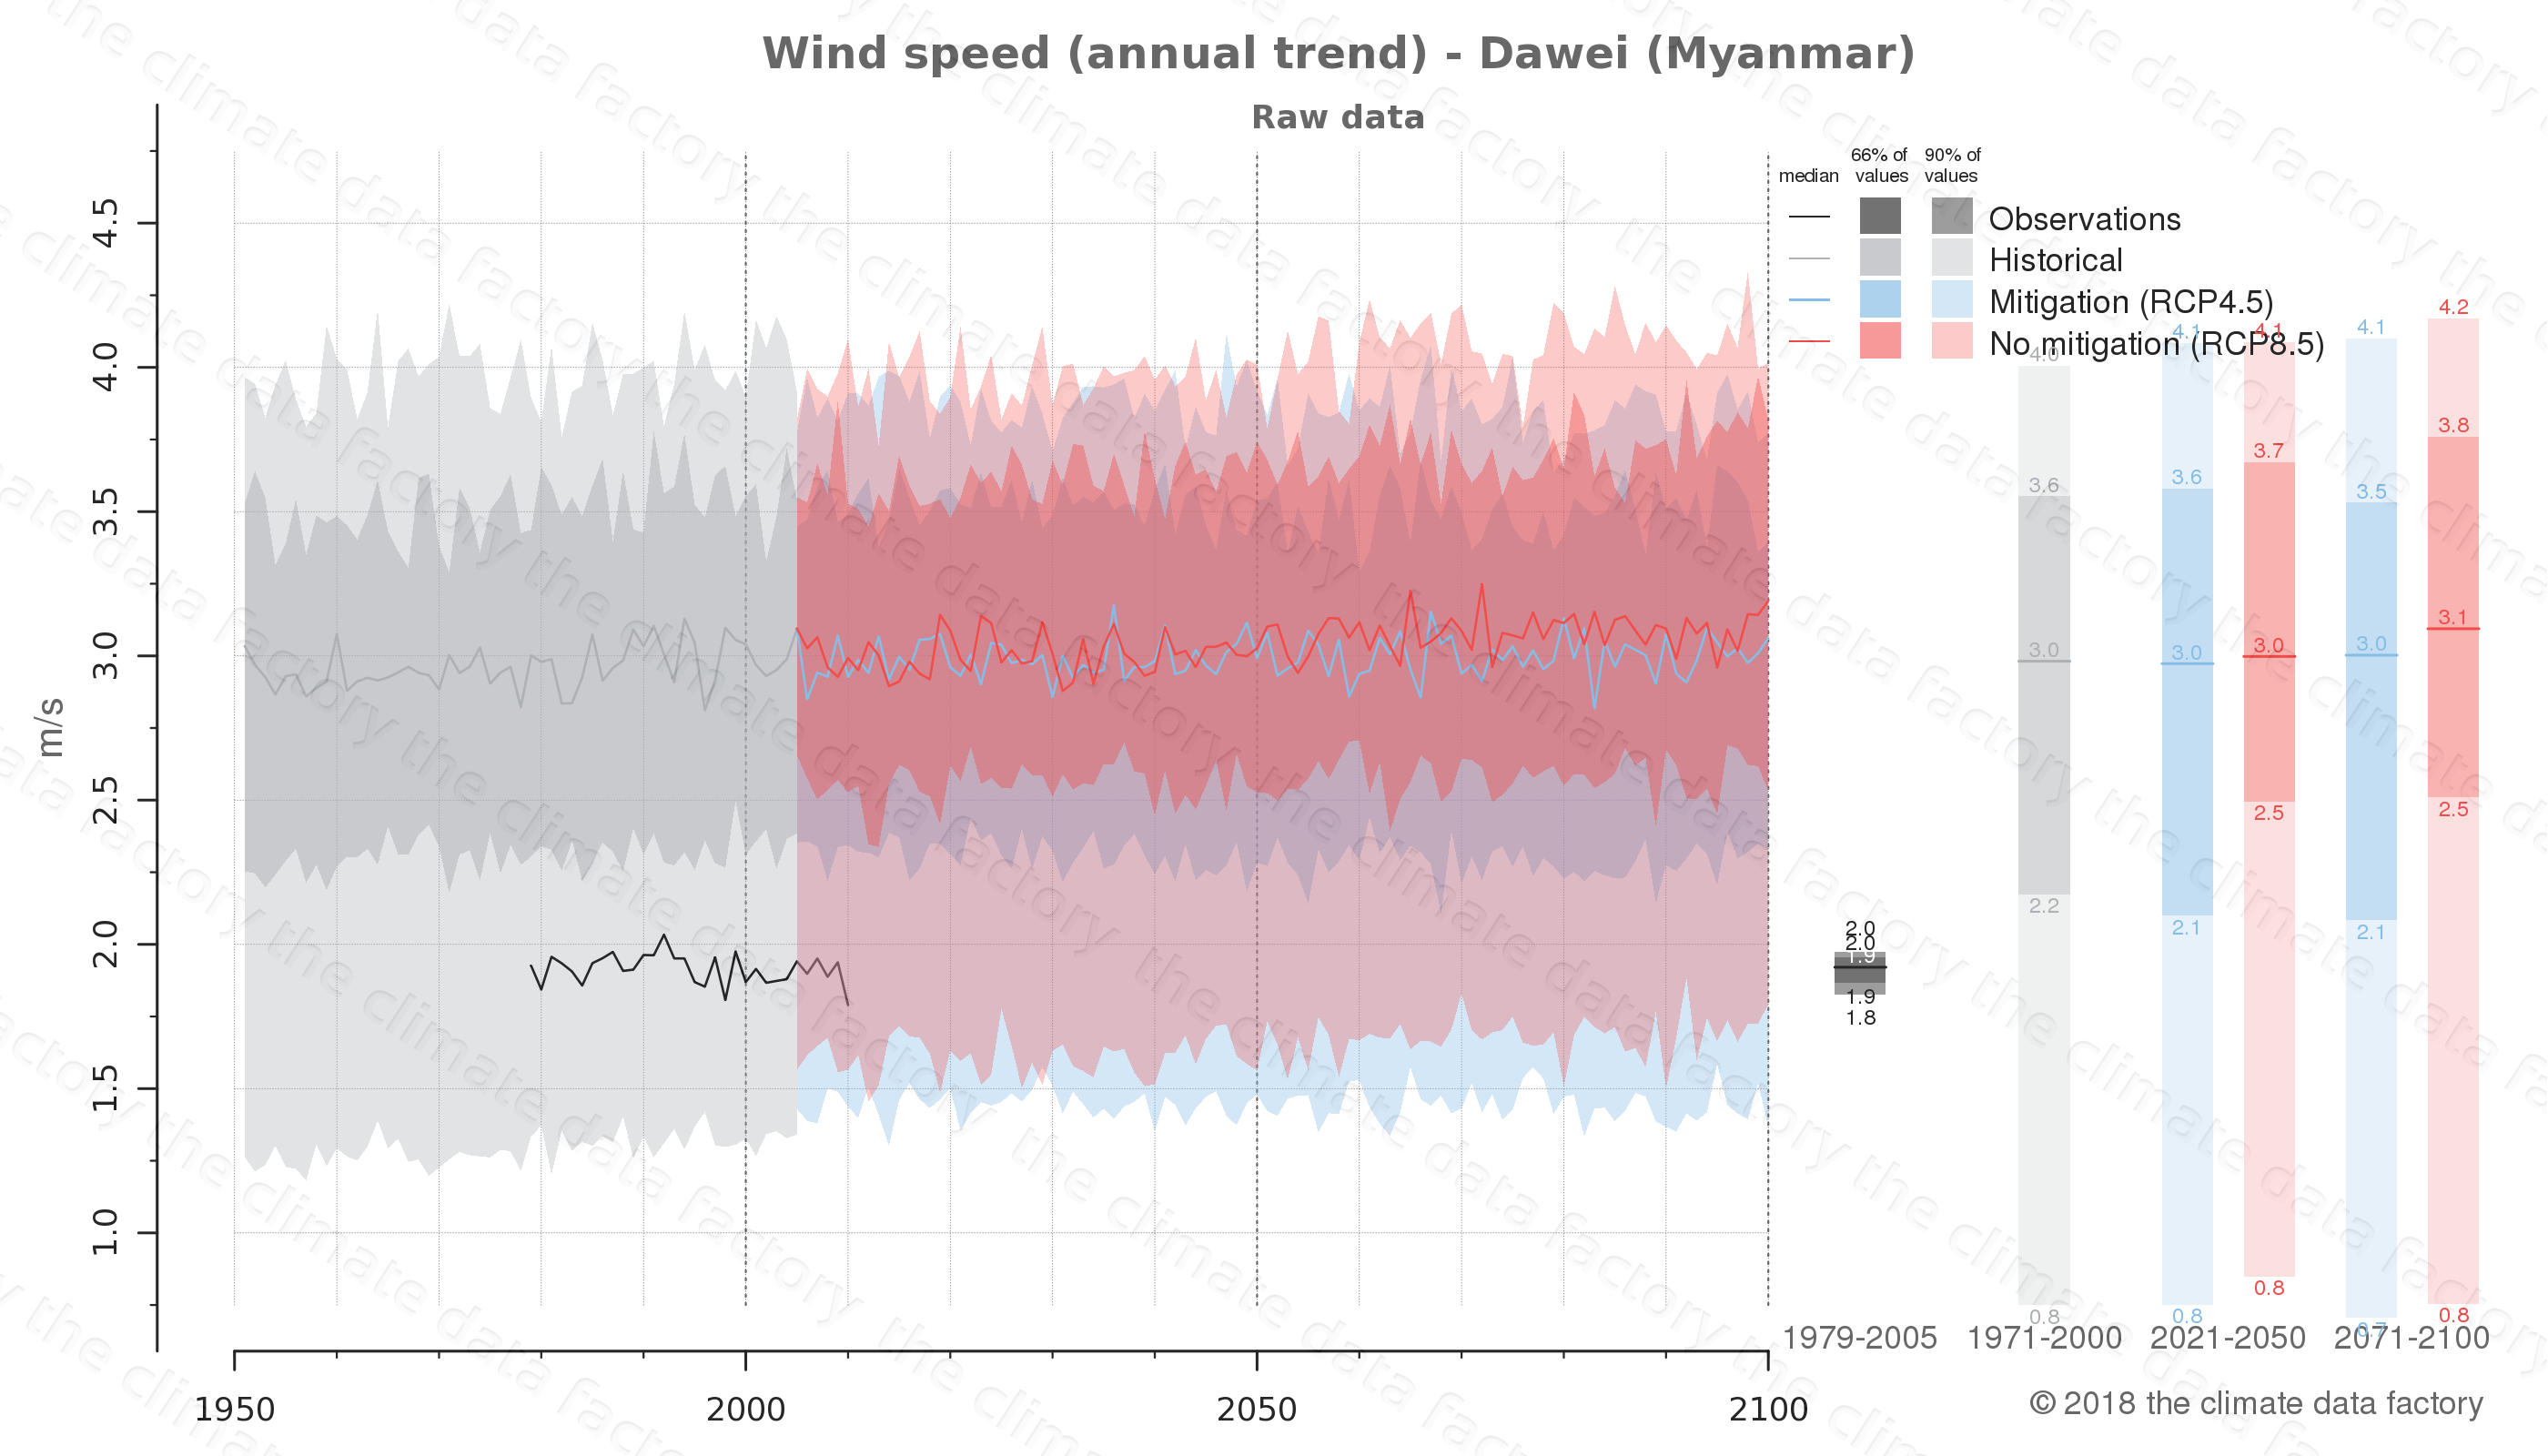 climate change data policy adaptation climate graph city data wind-speed dawei myanmar